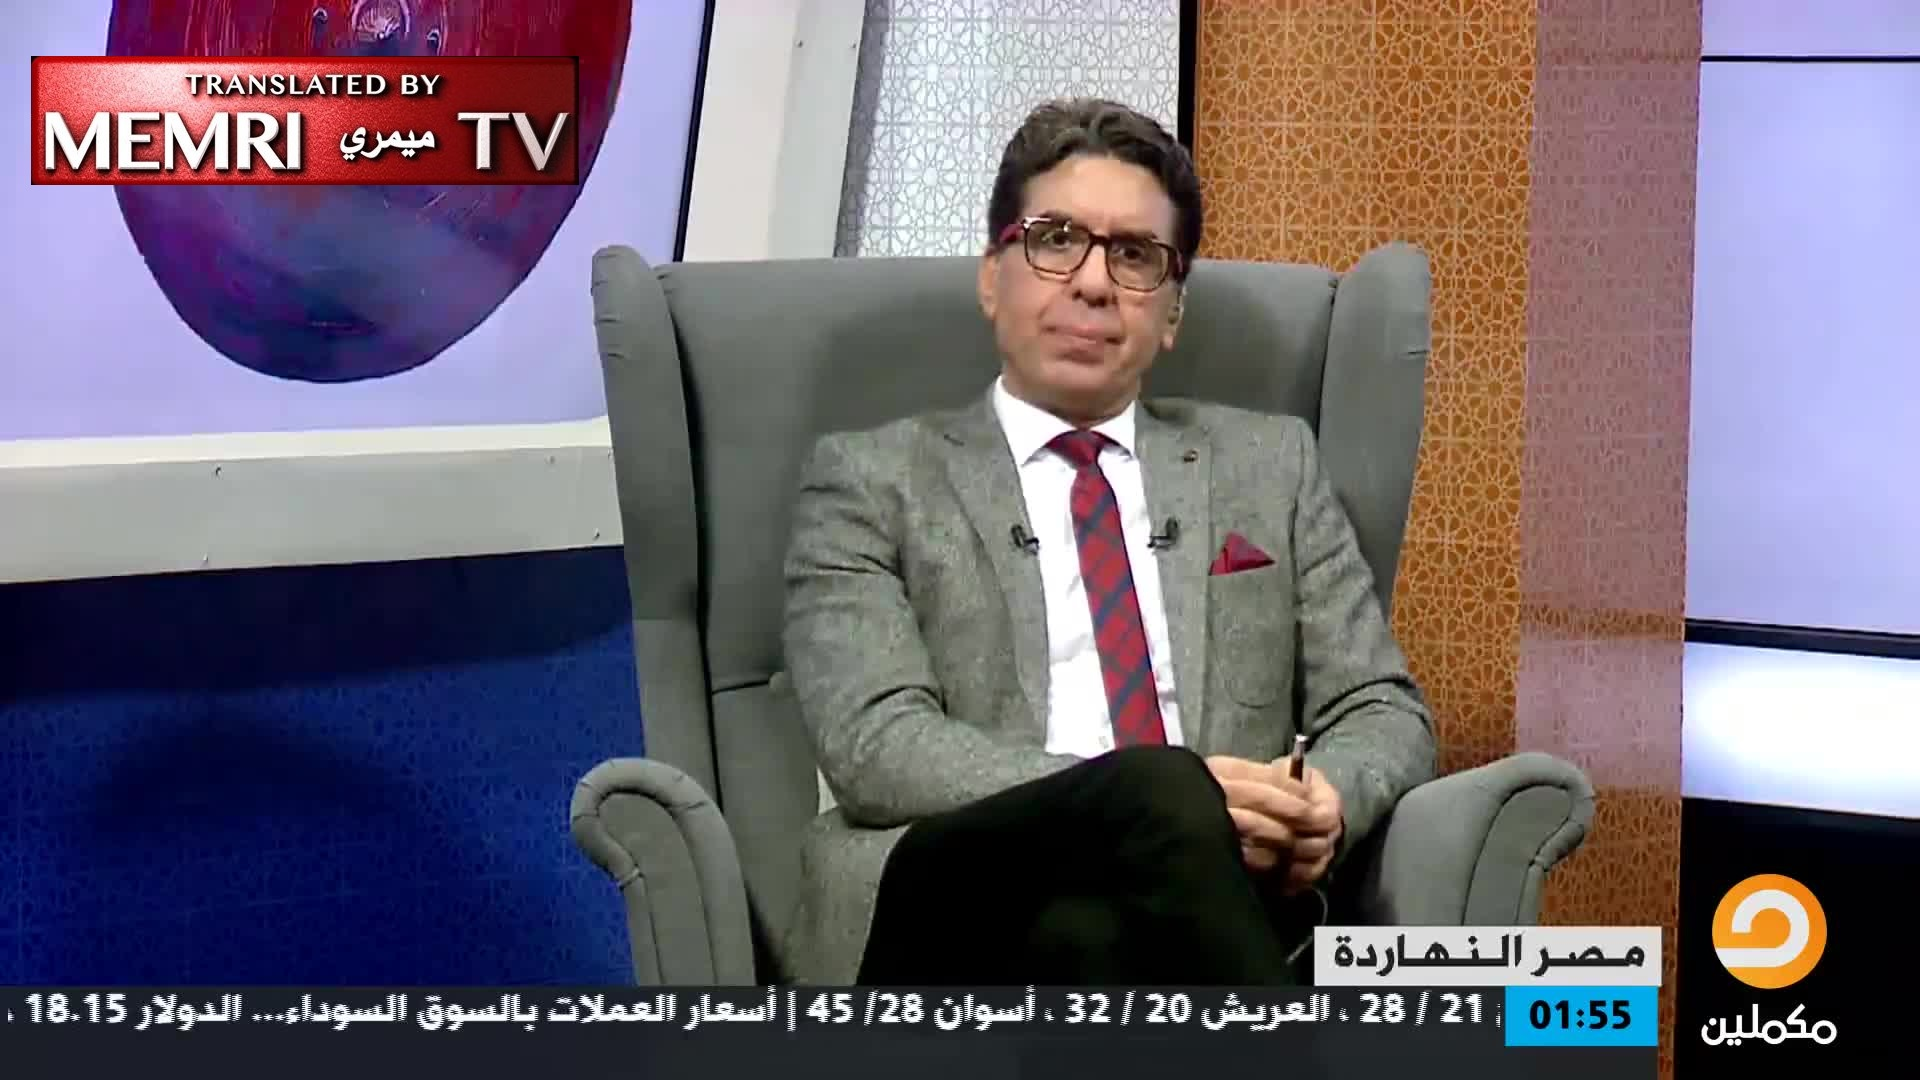 Muslim Brotherhood TV Host Mohammed Nasser: Rothschild Family Controls World Economy, Rose to Power Nefariously